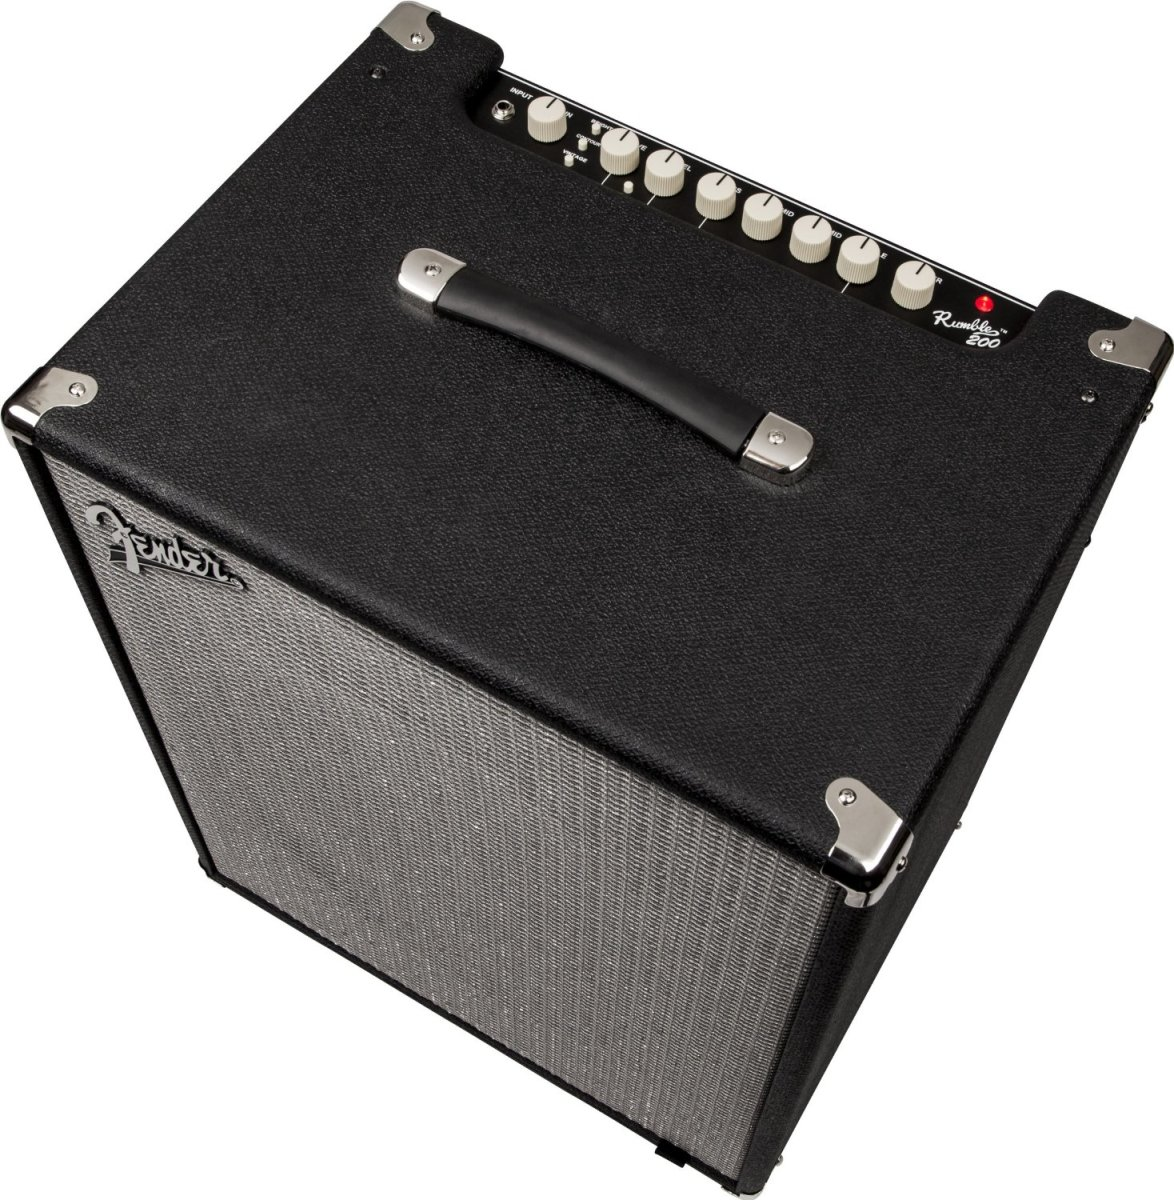 Best Bass Combo Amp Under $500